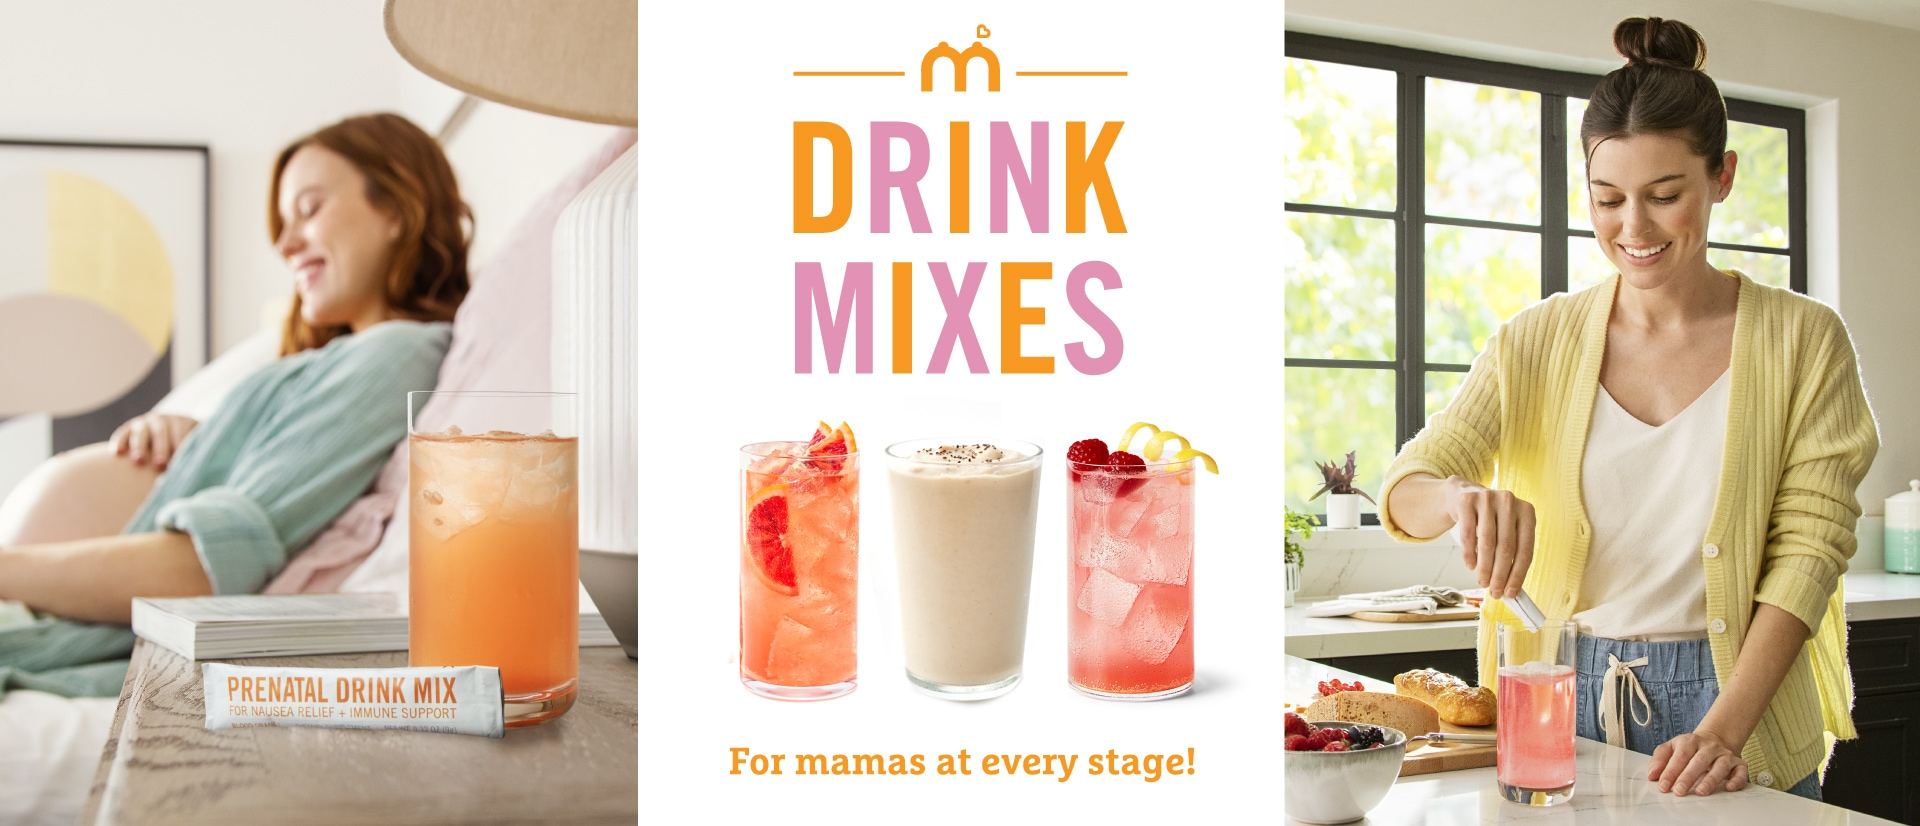 Drink mixes for mamas at every stage